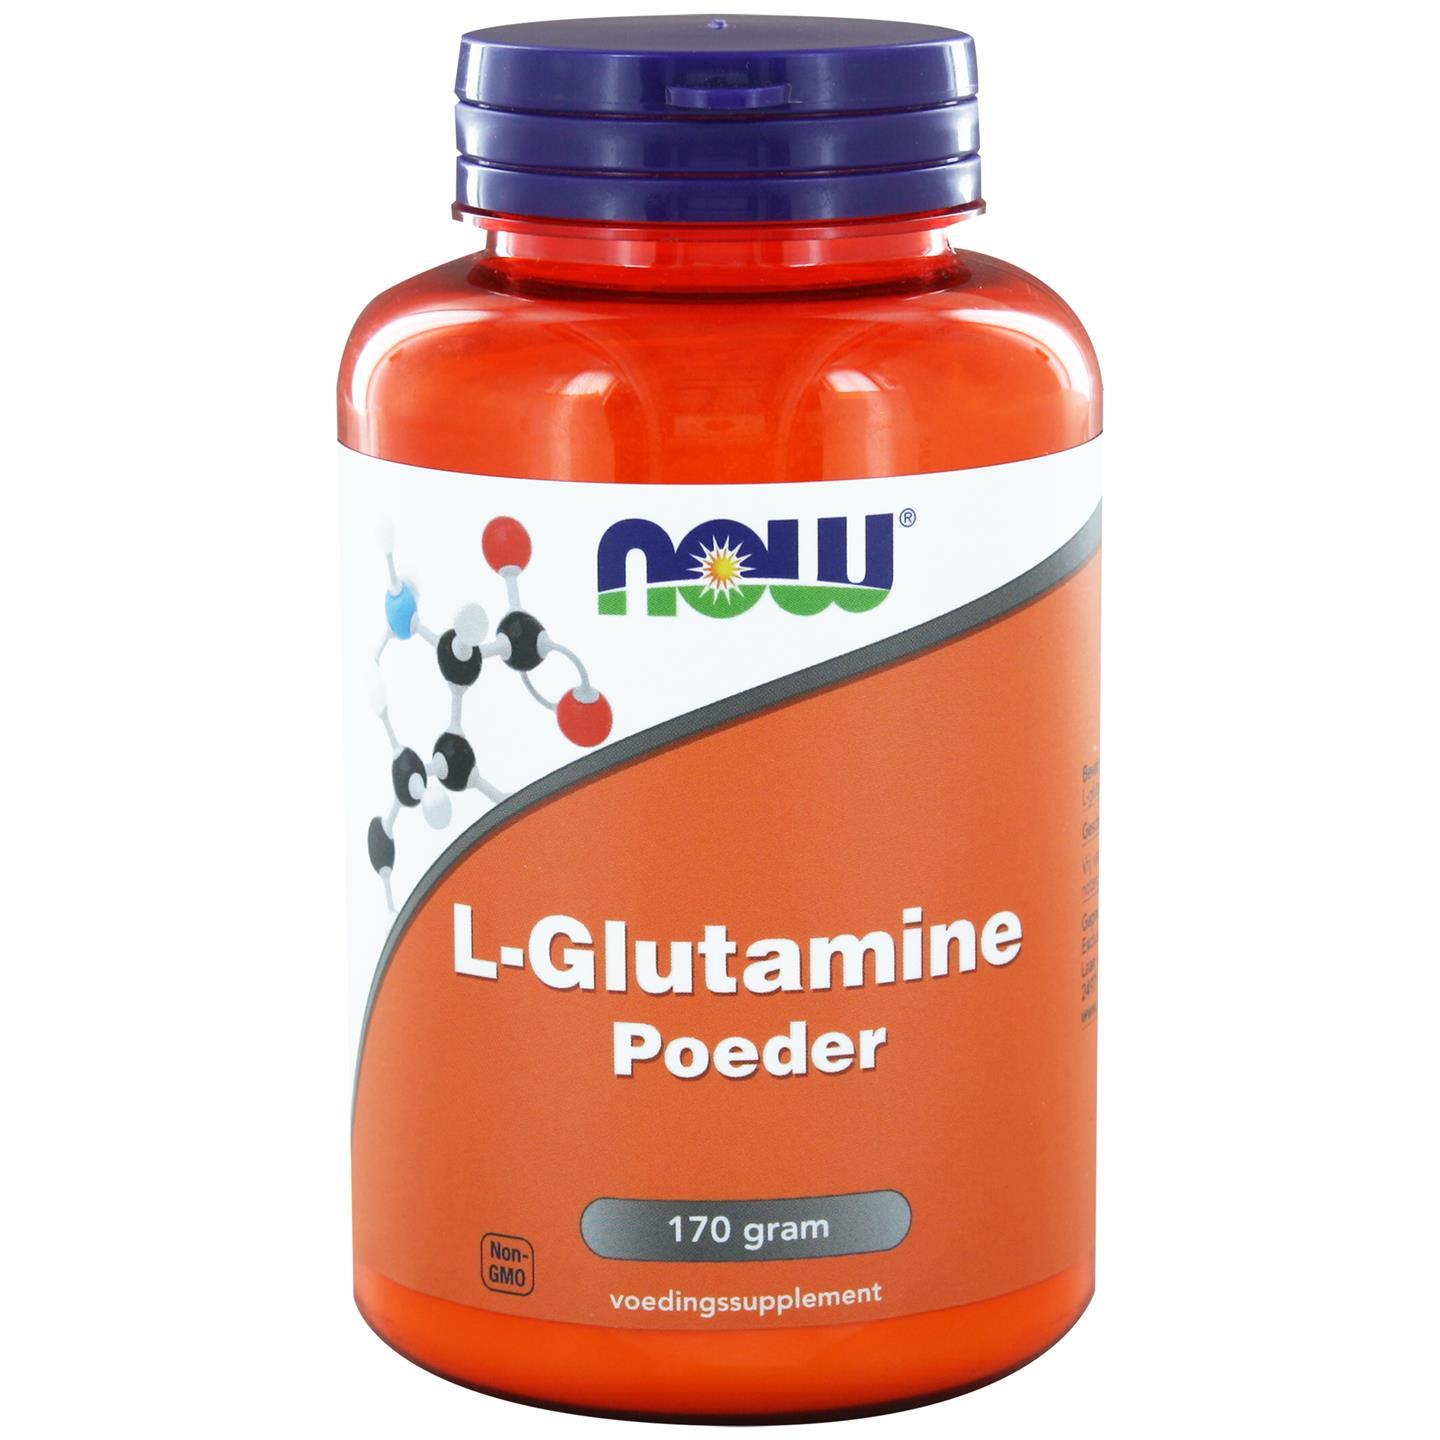 L Glutamine Poeder (170 gram) NOW Foods